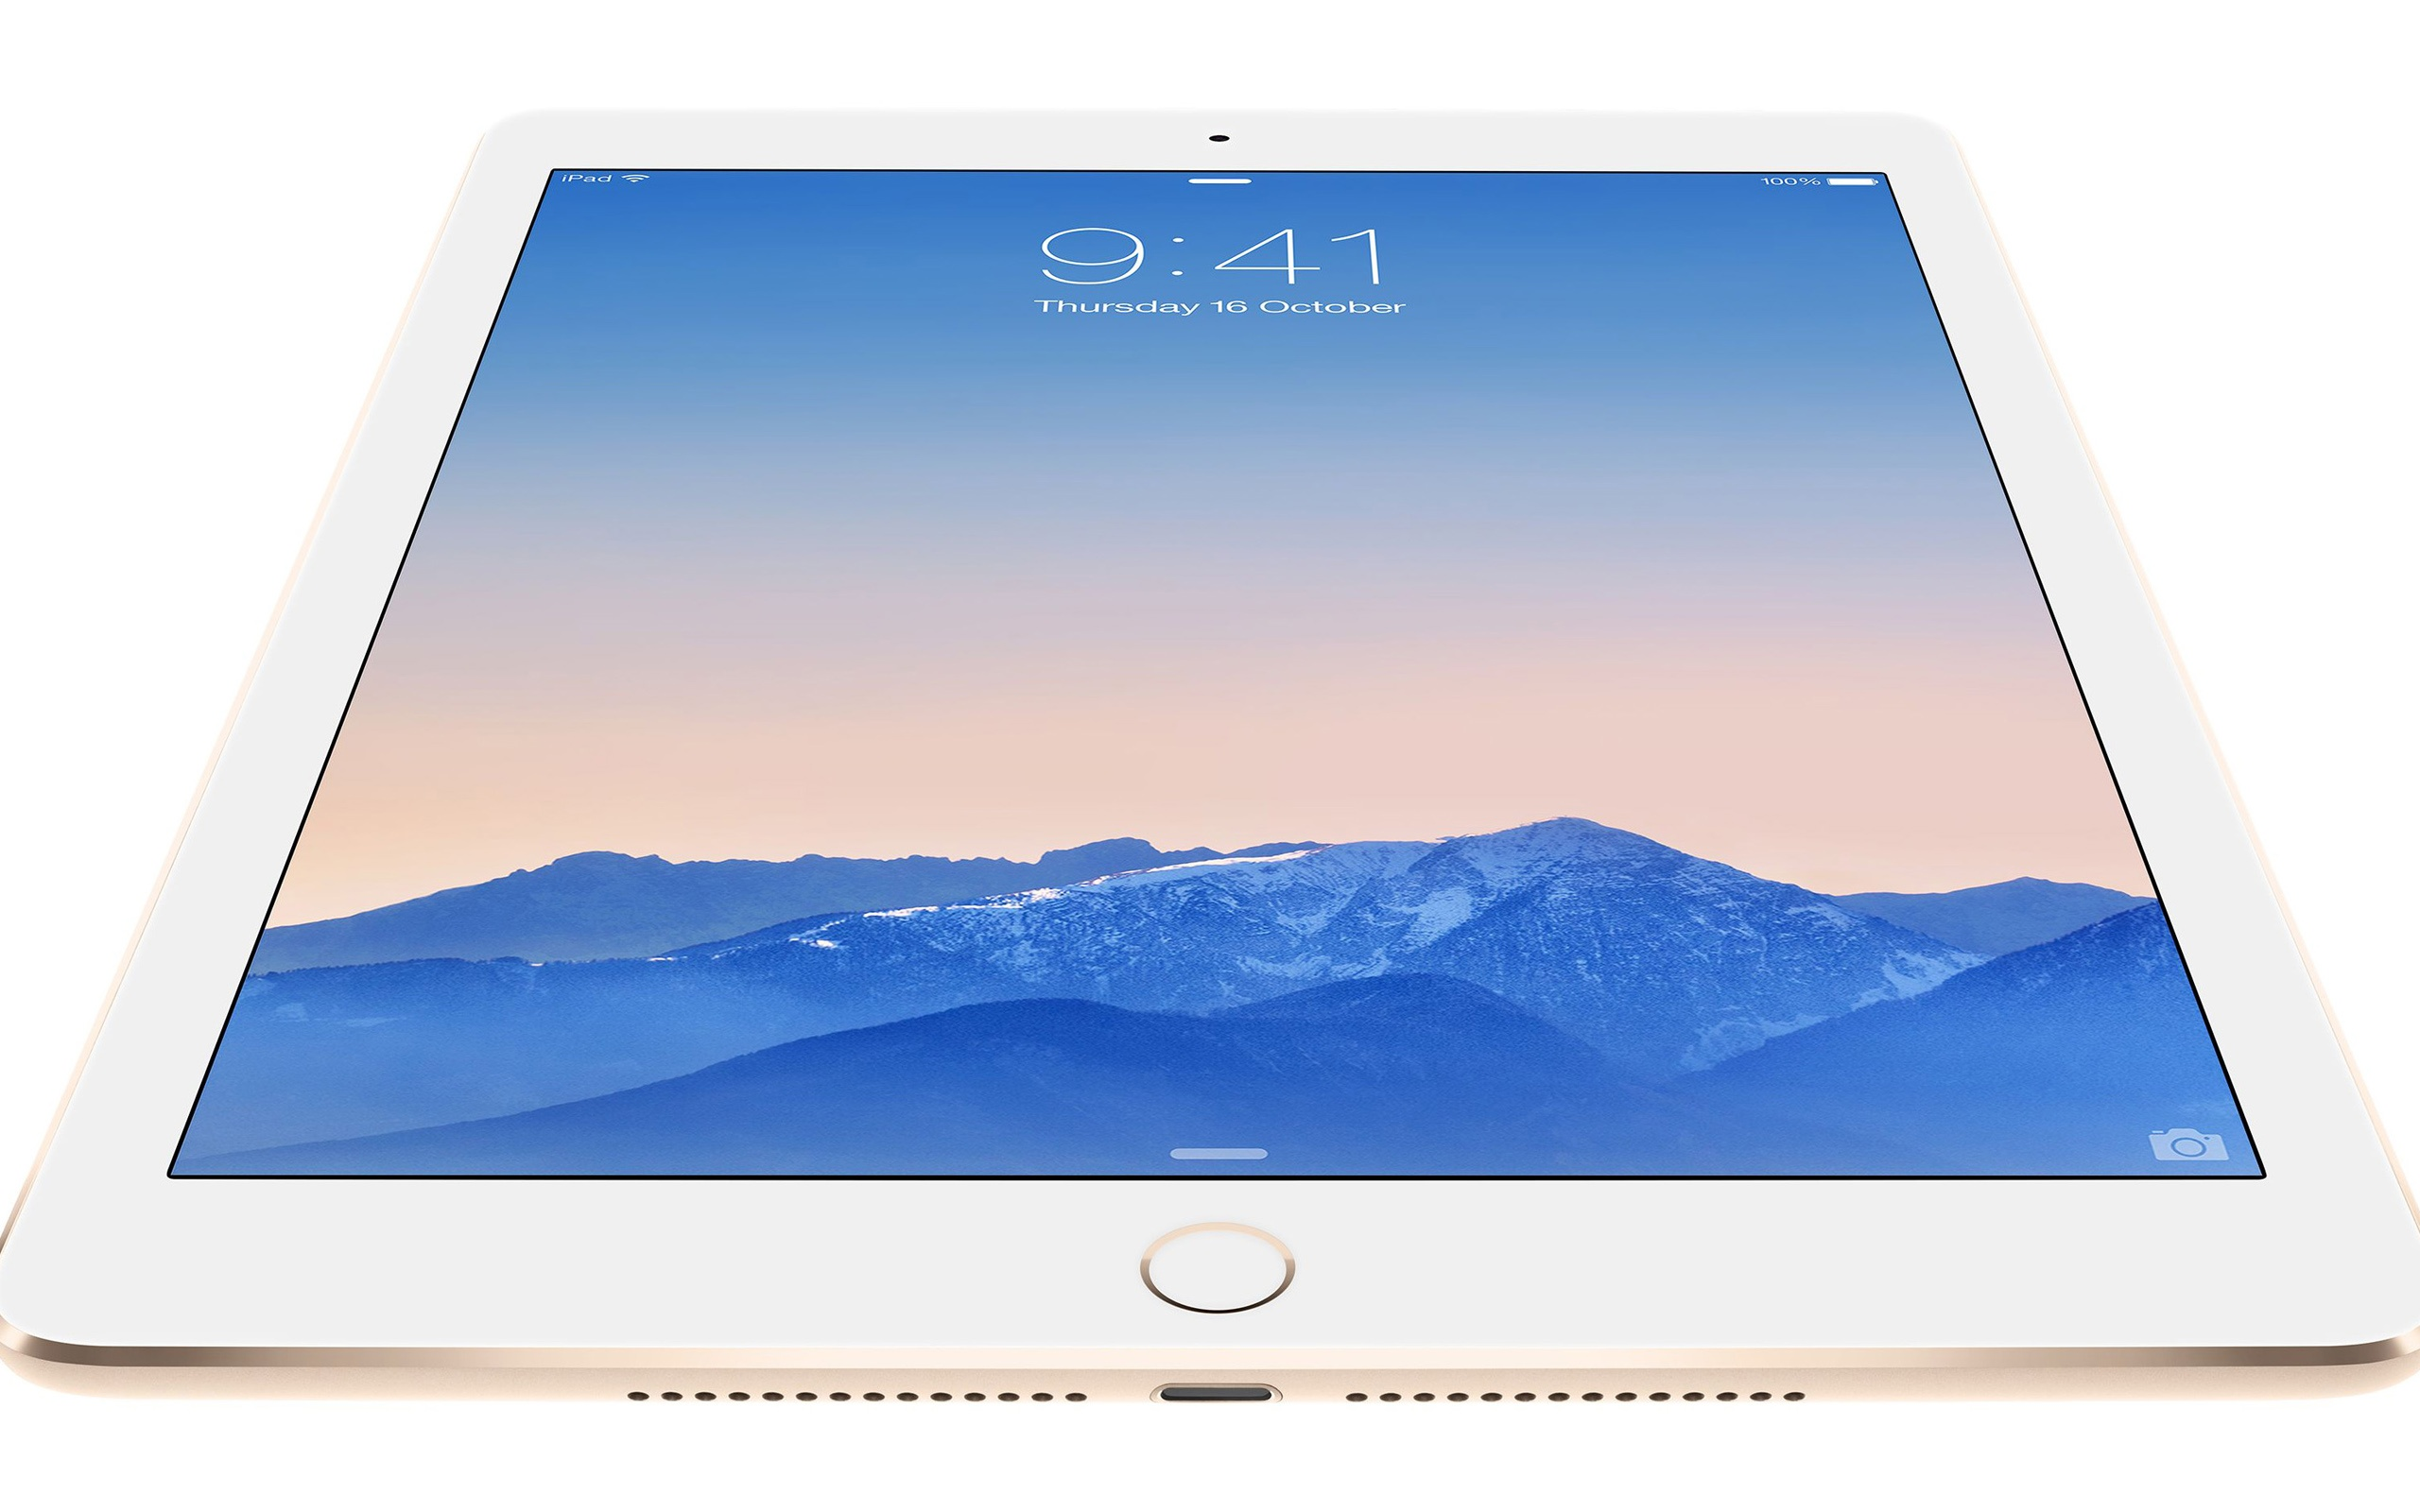 50 Ipad Air Wallpapers In High Definition For Free Download: Wallpapers For IPad Air 2